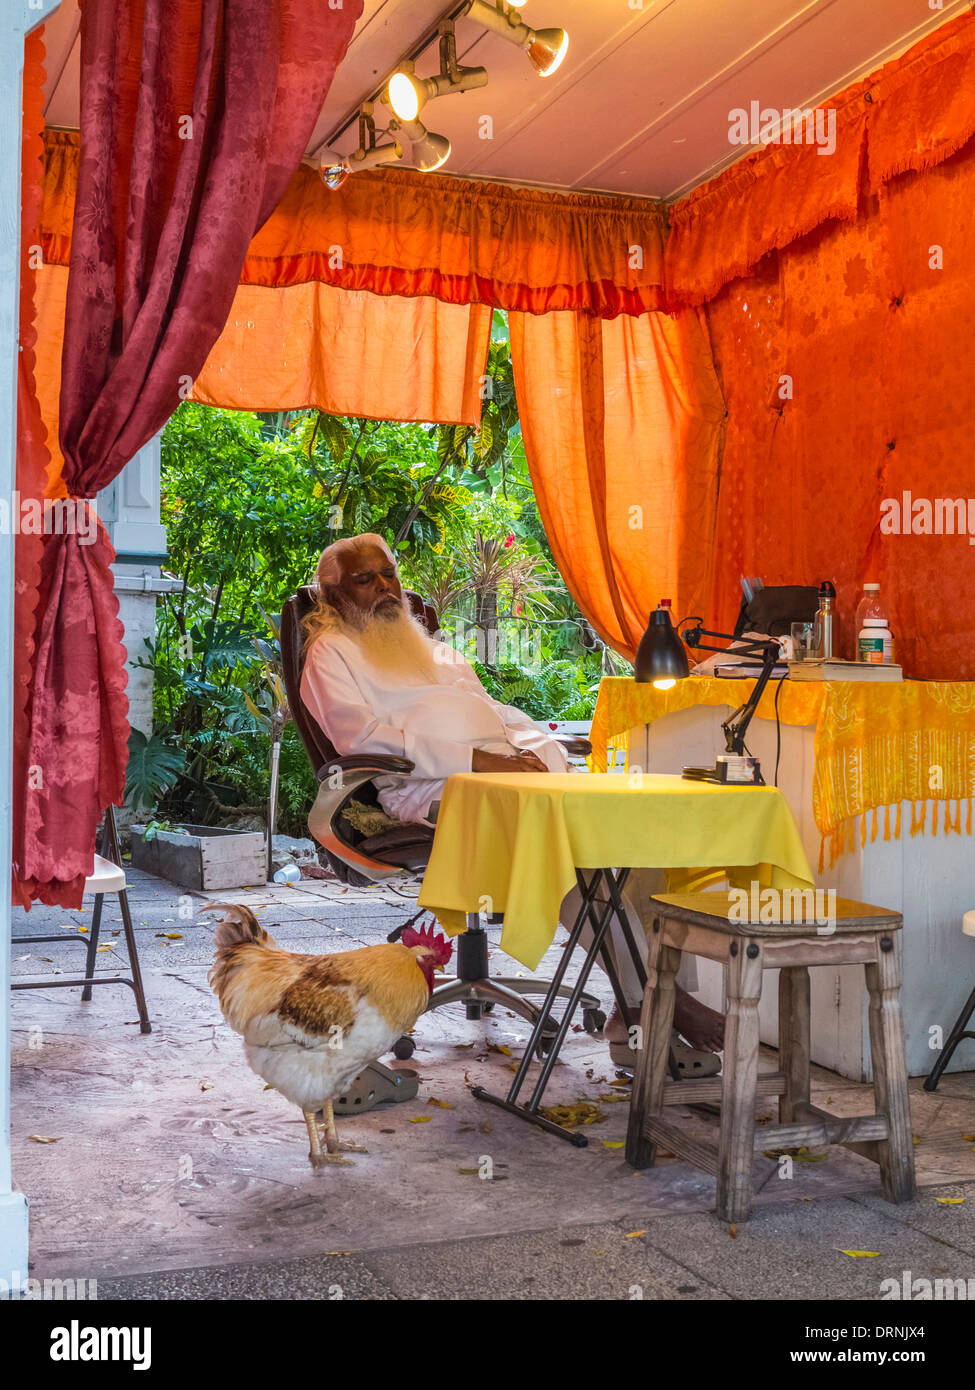 Fortune teller in Key West, Florida, USA - Stock Image